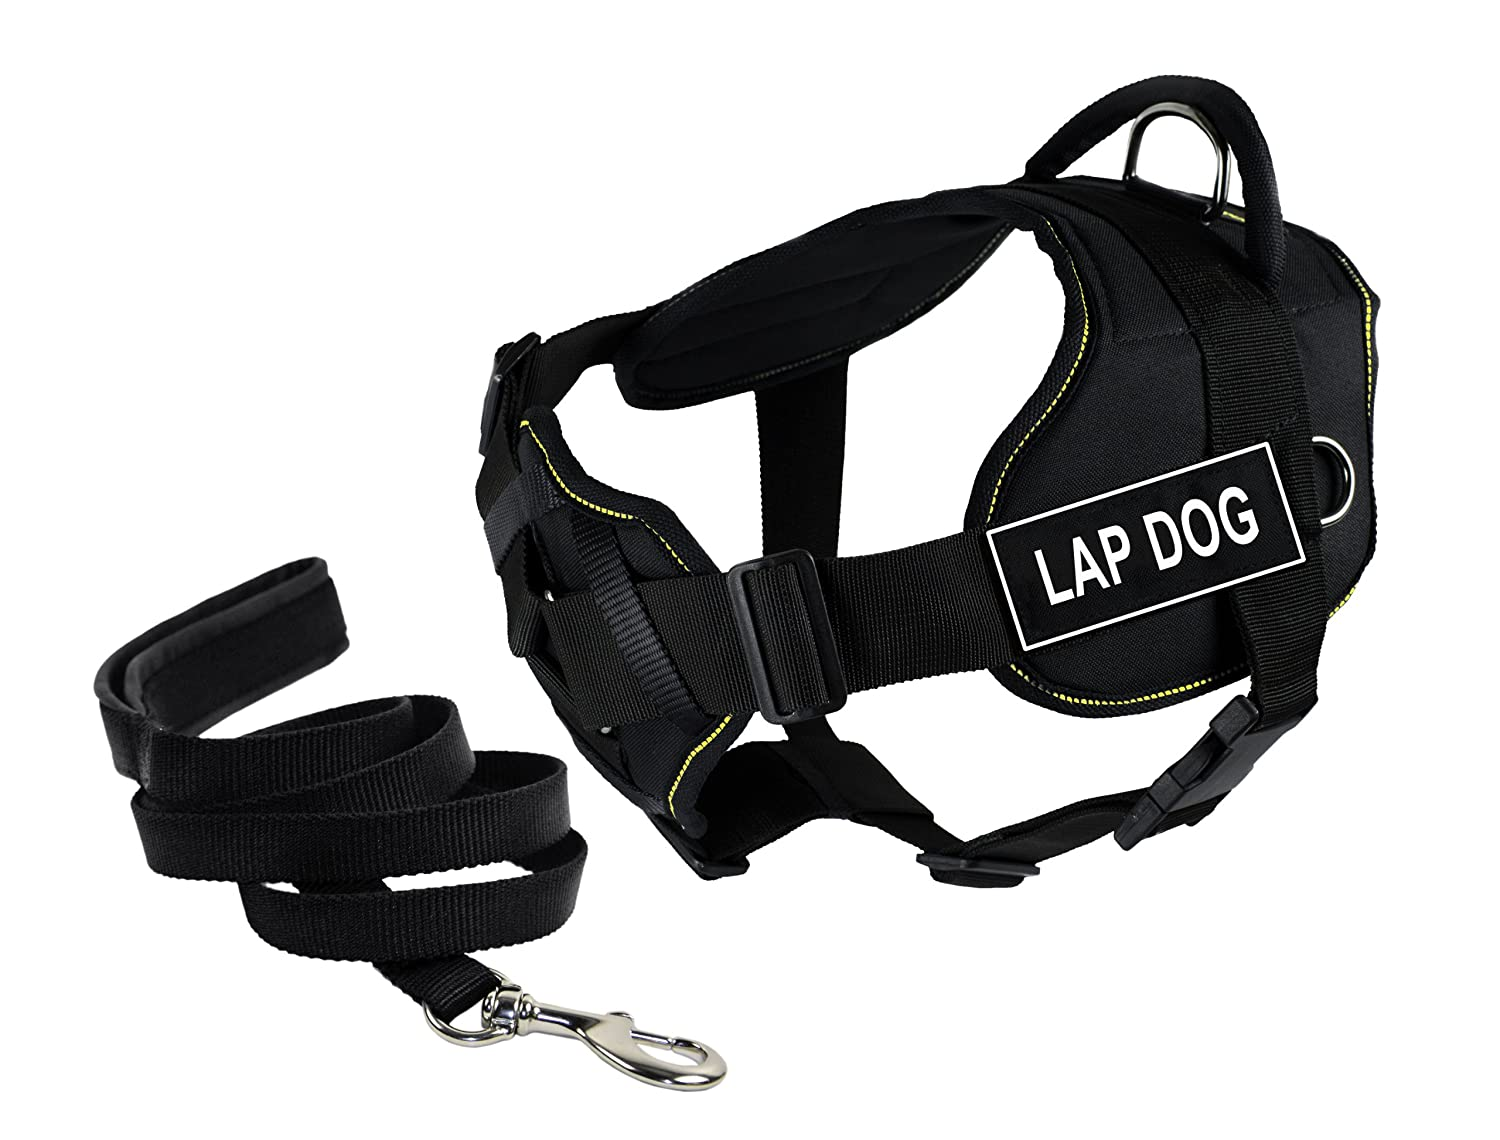 Dean & Tyler's DT Fun Chest Support  LAP DOG  Harness, Large, with 6 ft Padded Puppy Leash.